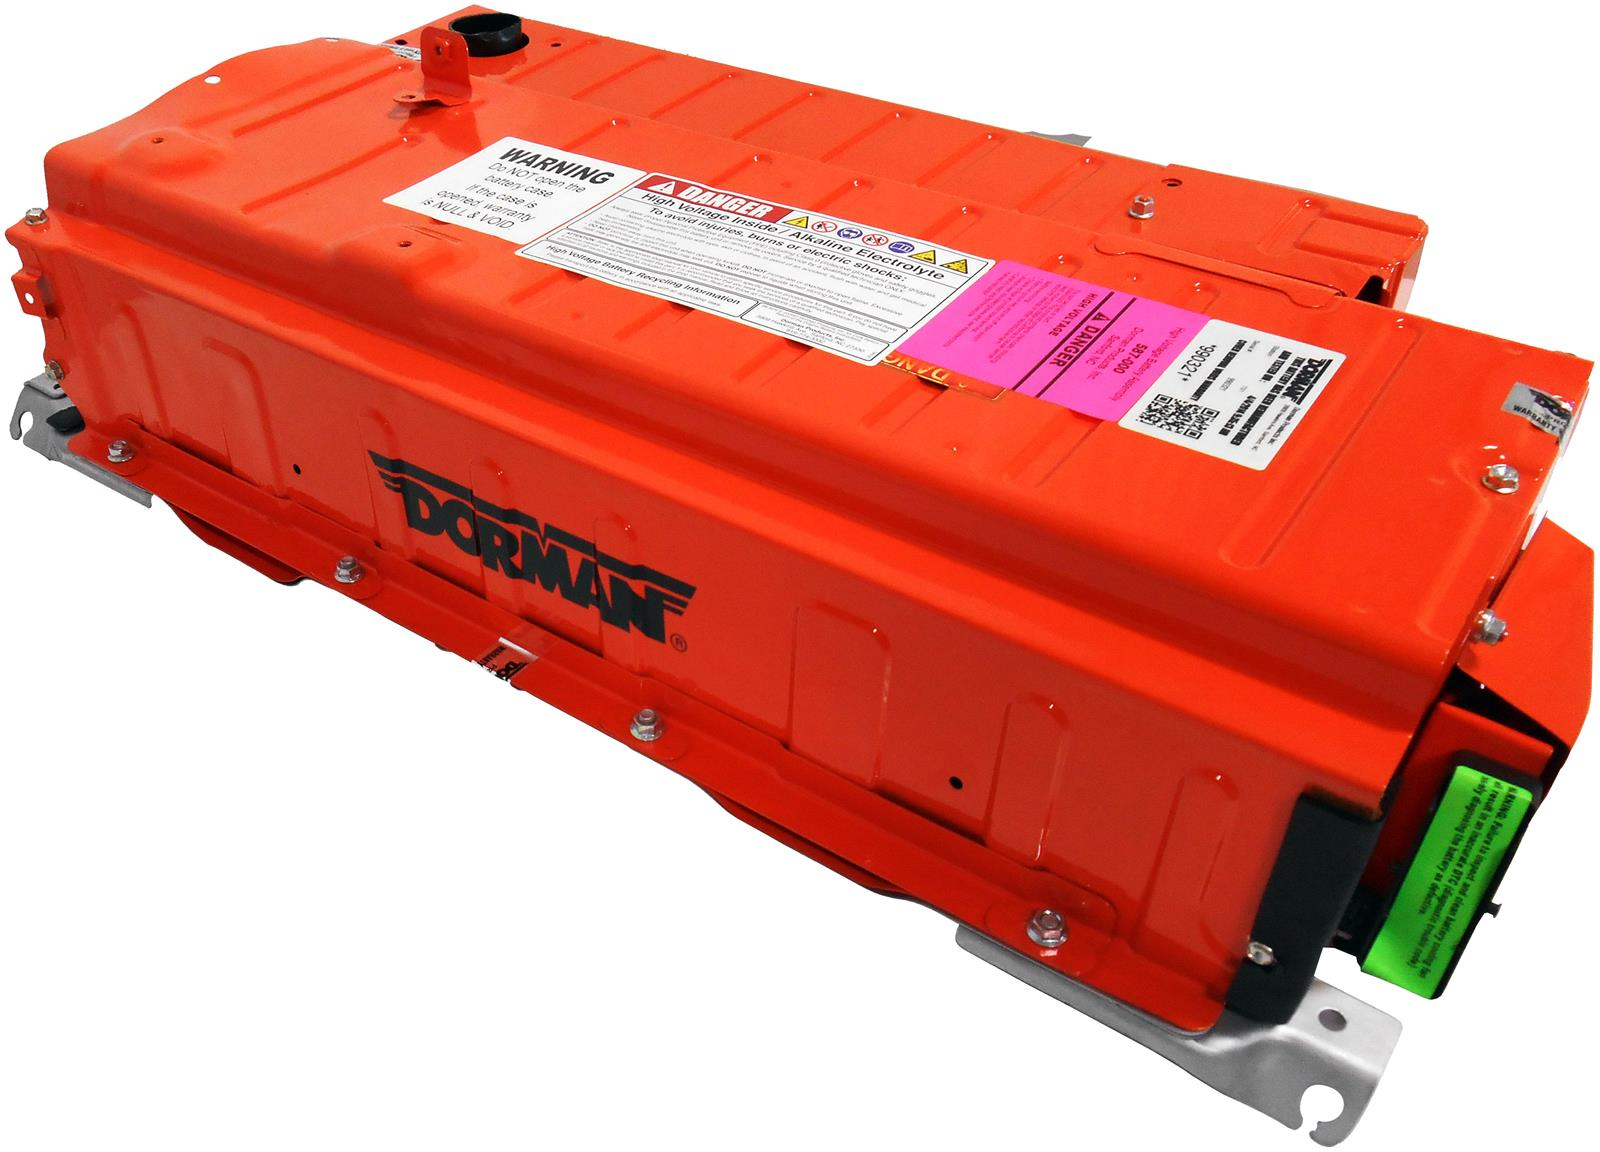 Dorman Hybrid Battery Packs 587 002 Free Shipping On Orders Over 99 At Summit Racing